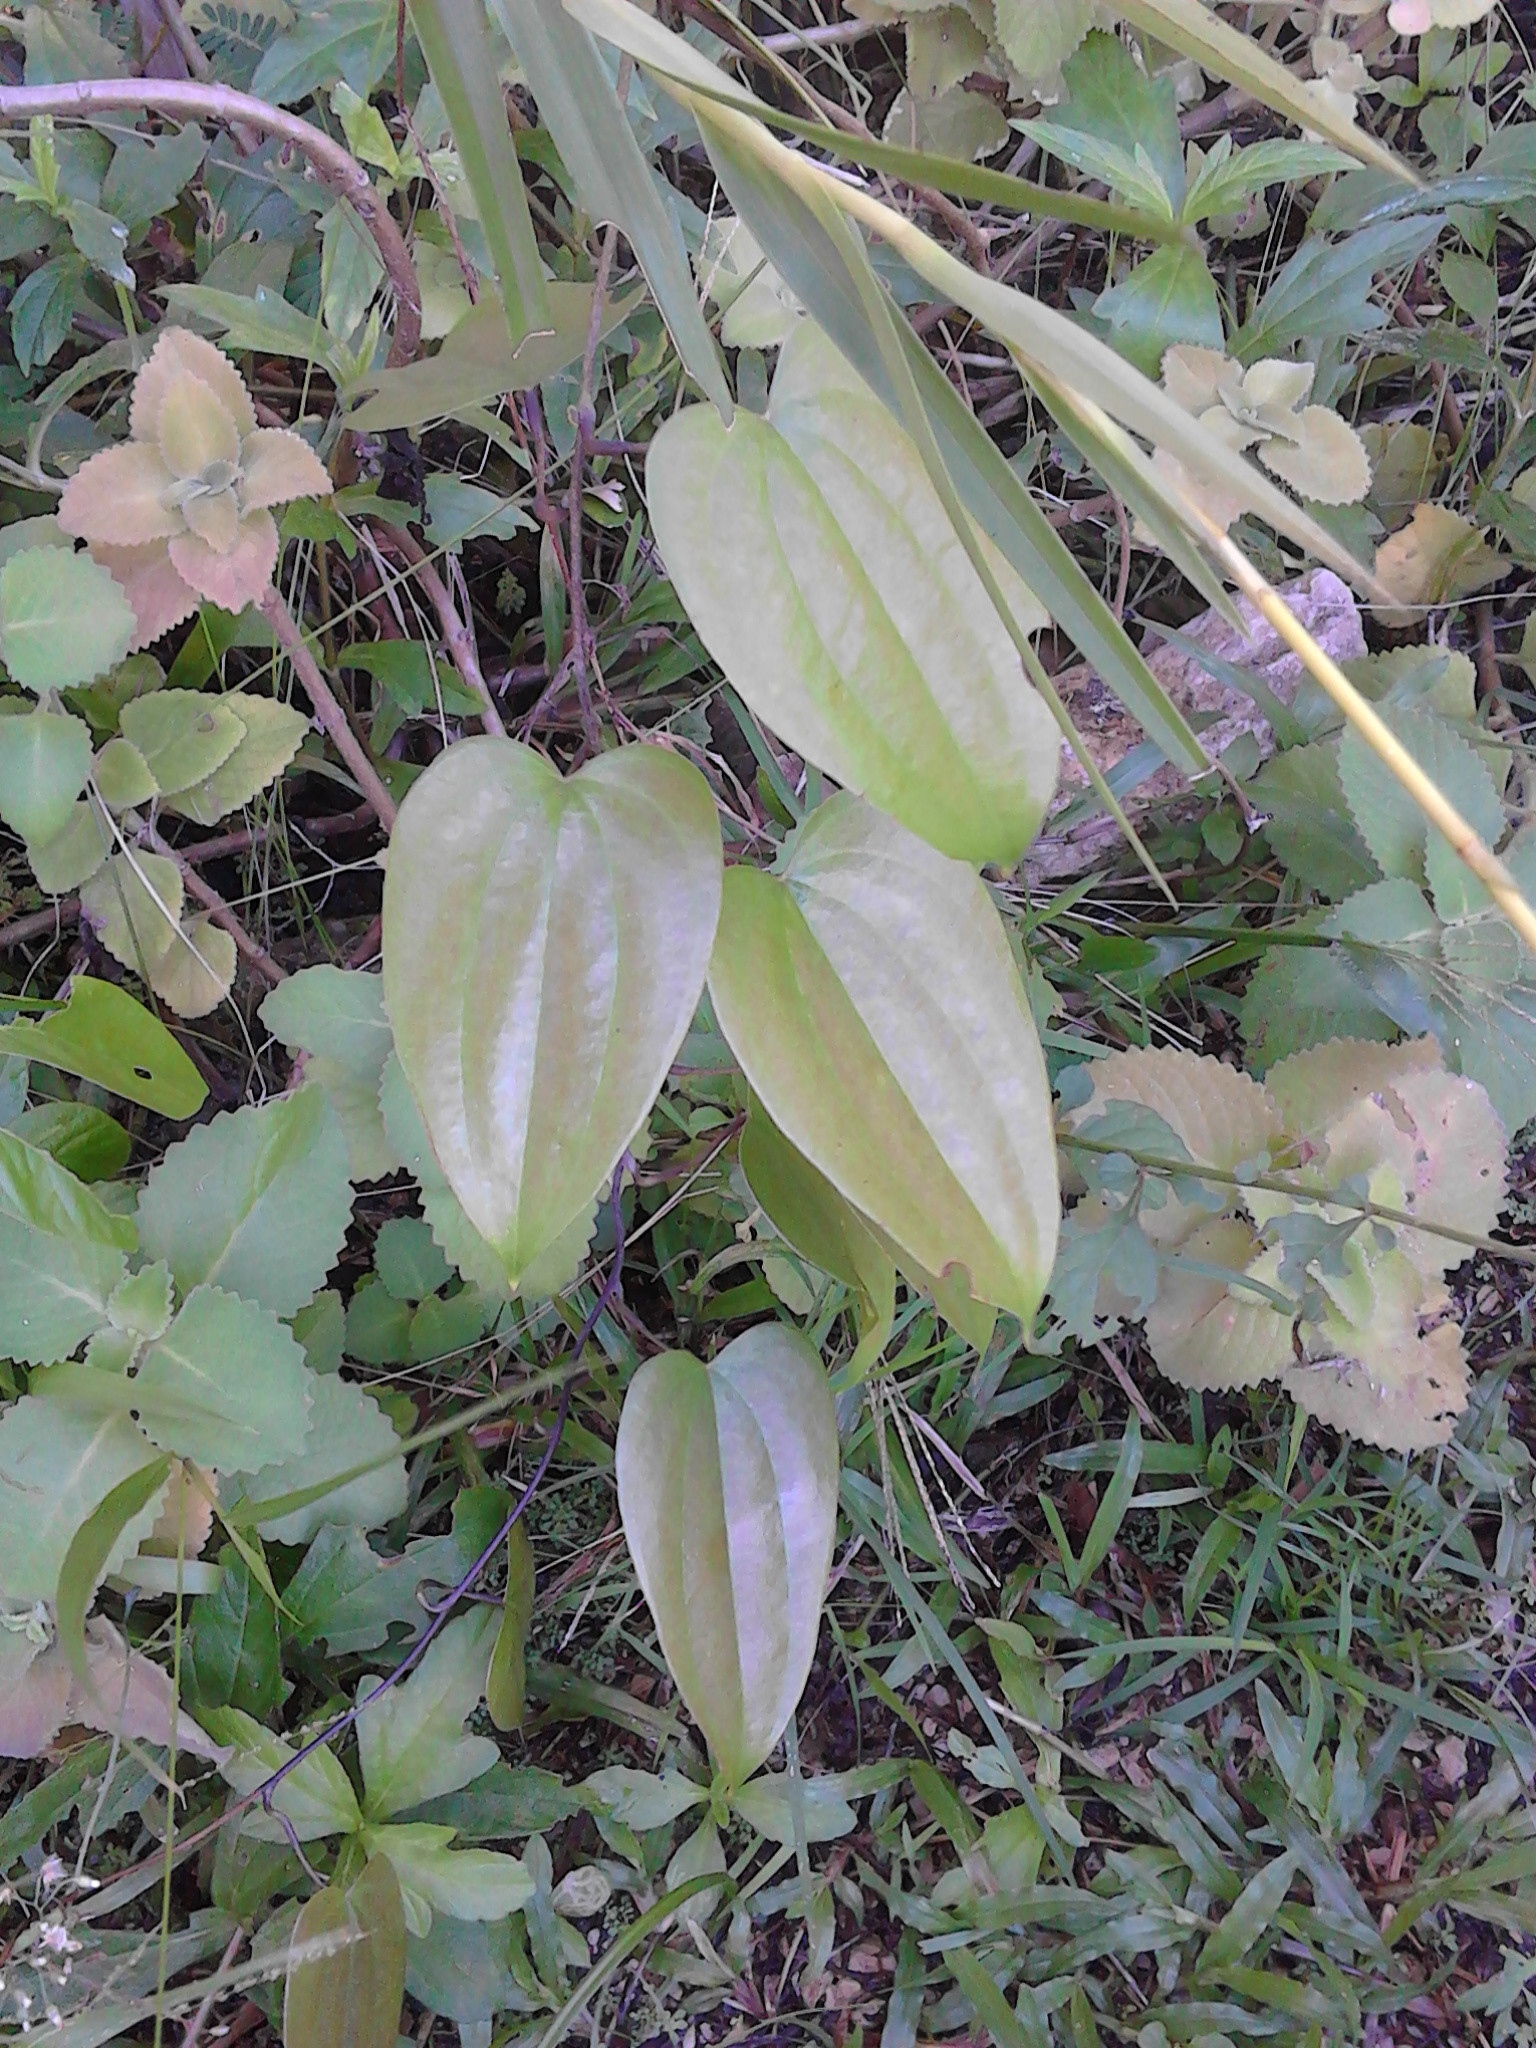 Wild Yam Pictures 011.jpg